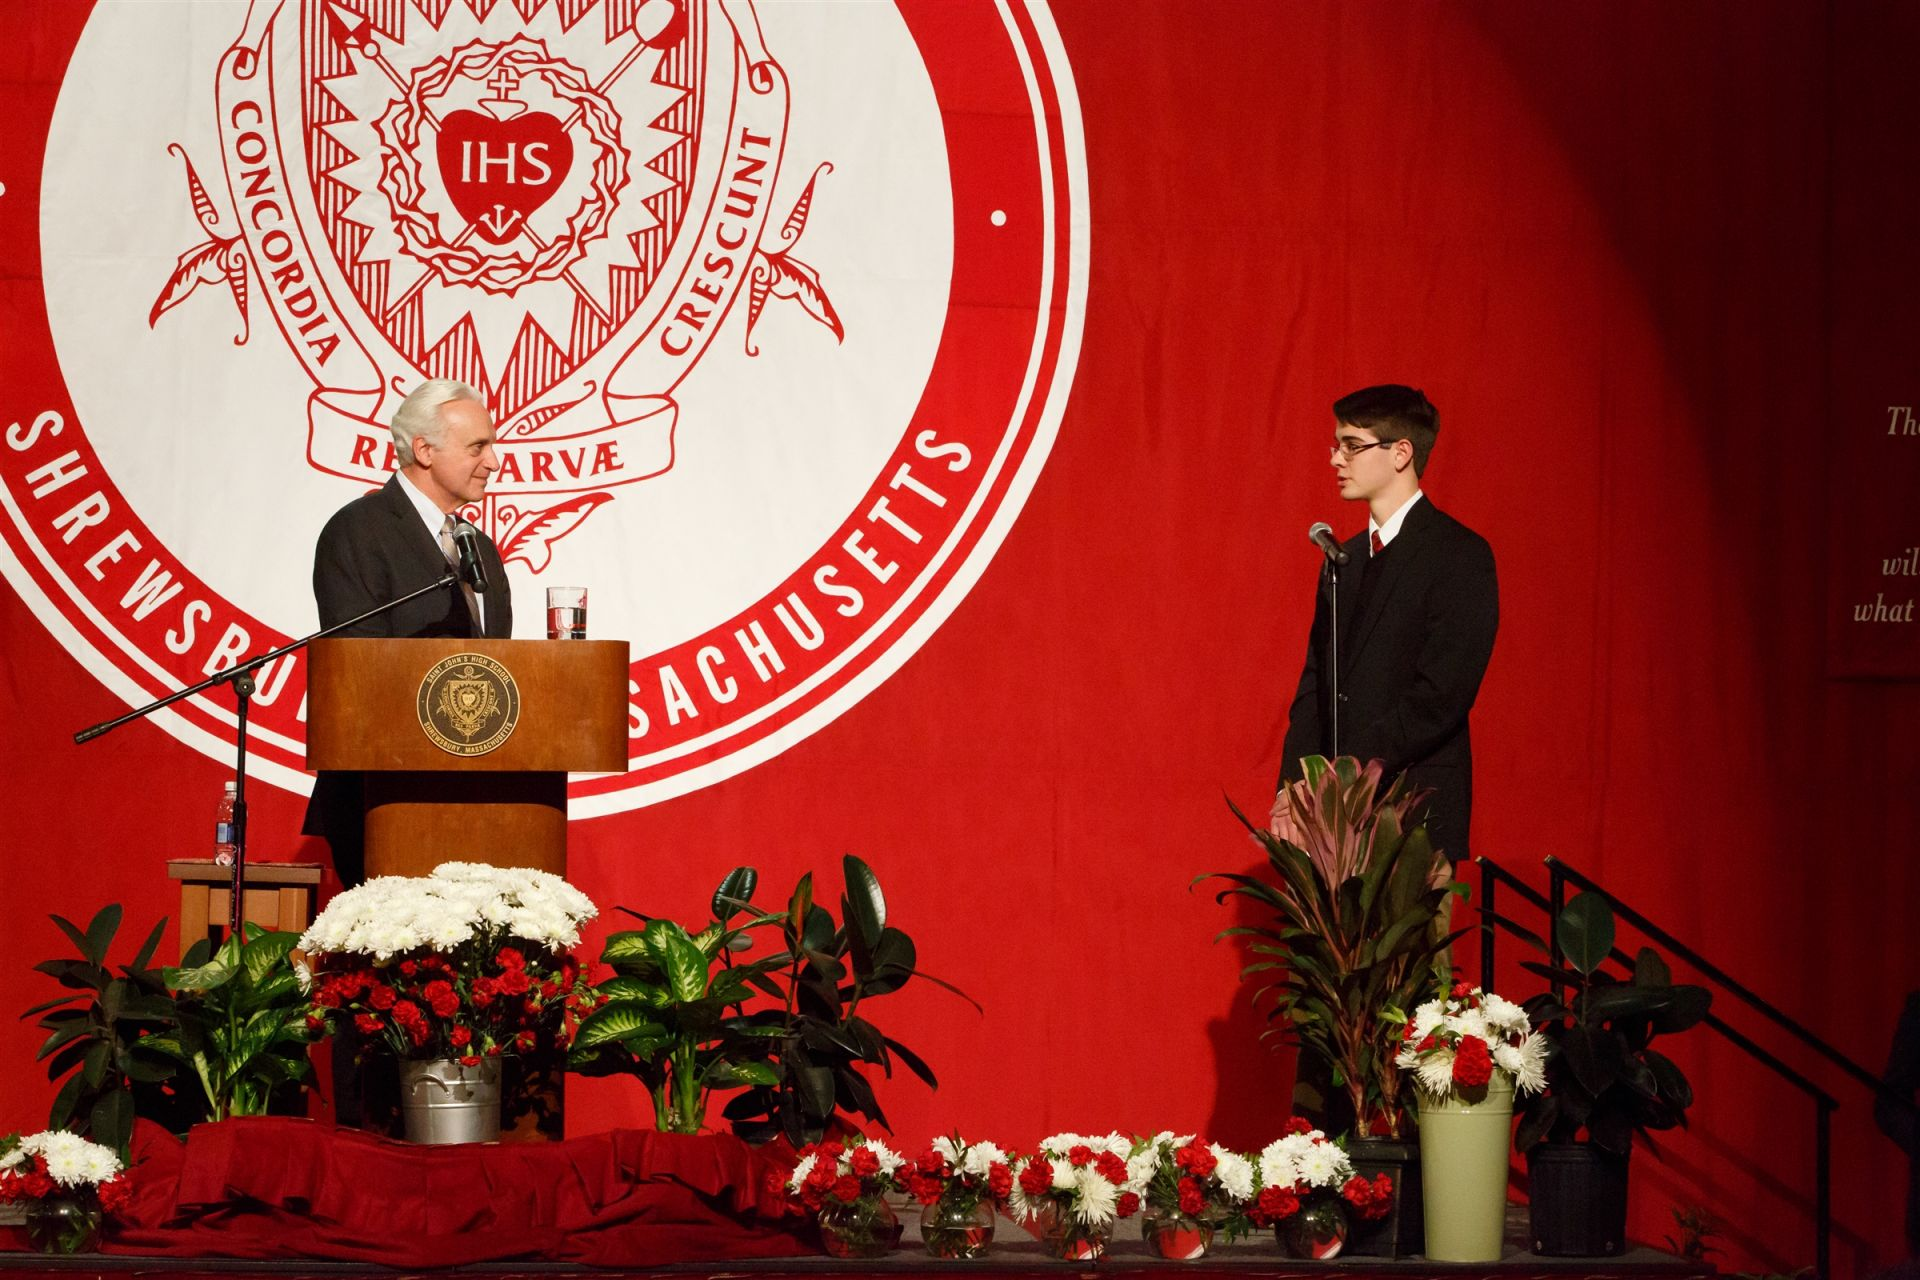 Alex Crolais '16 asks Mr. Ricciardone a question during his lecture